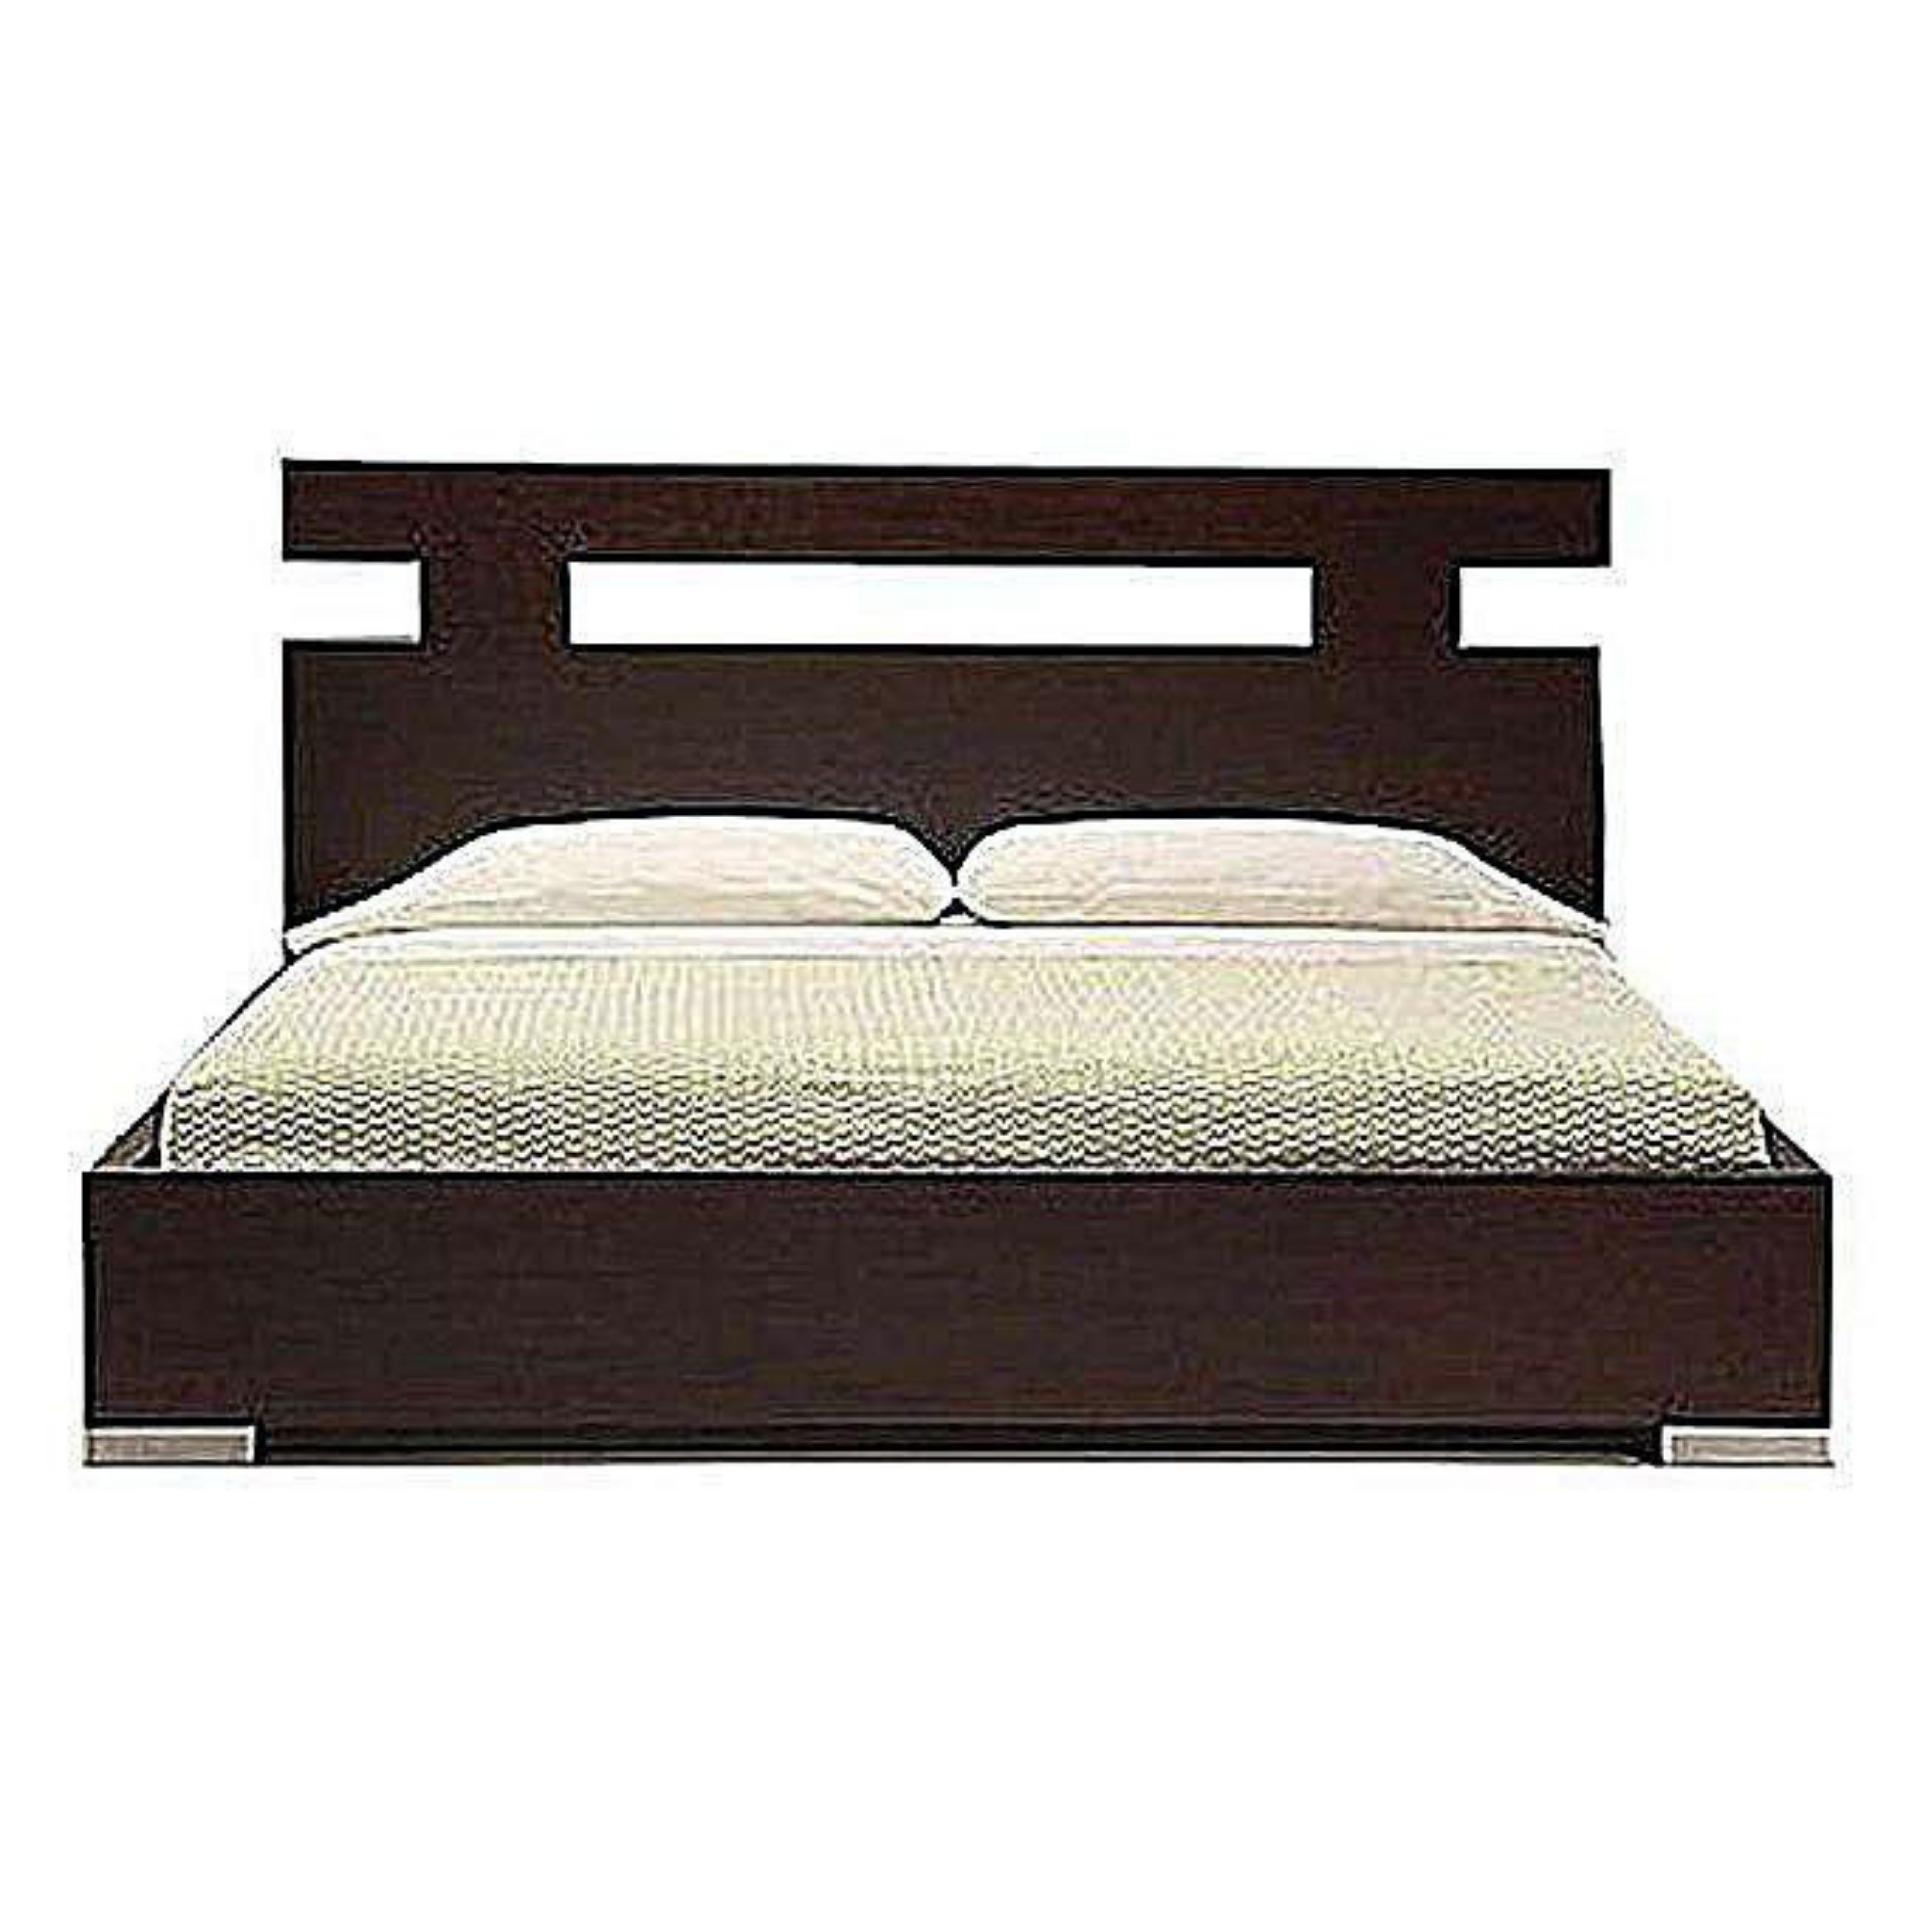 Crushed Velvet Bed Ebay Malyasian Bed Mdb070 Standard Dark Chocolate